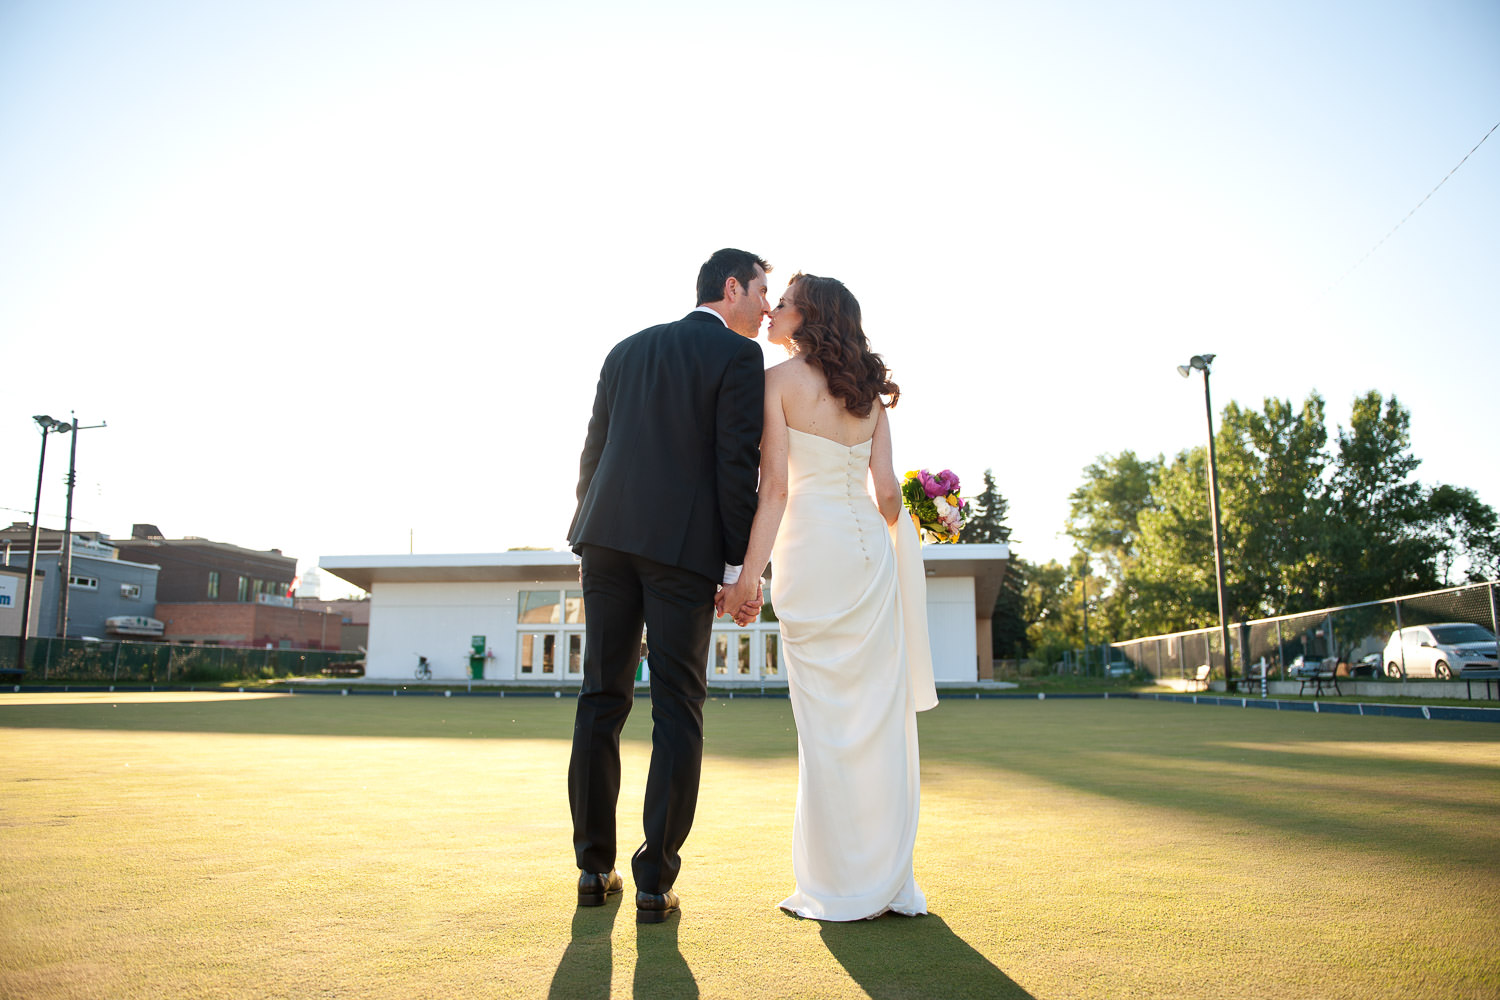 Bride and groom at Inglewood Lawn Bowling Club captured by Tara Whittaker Photography